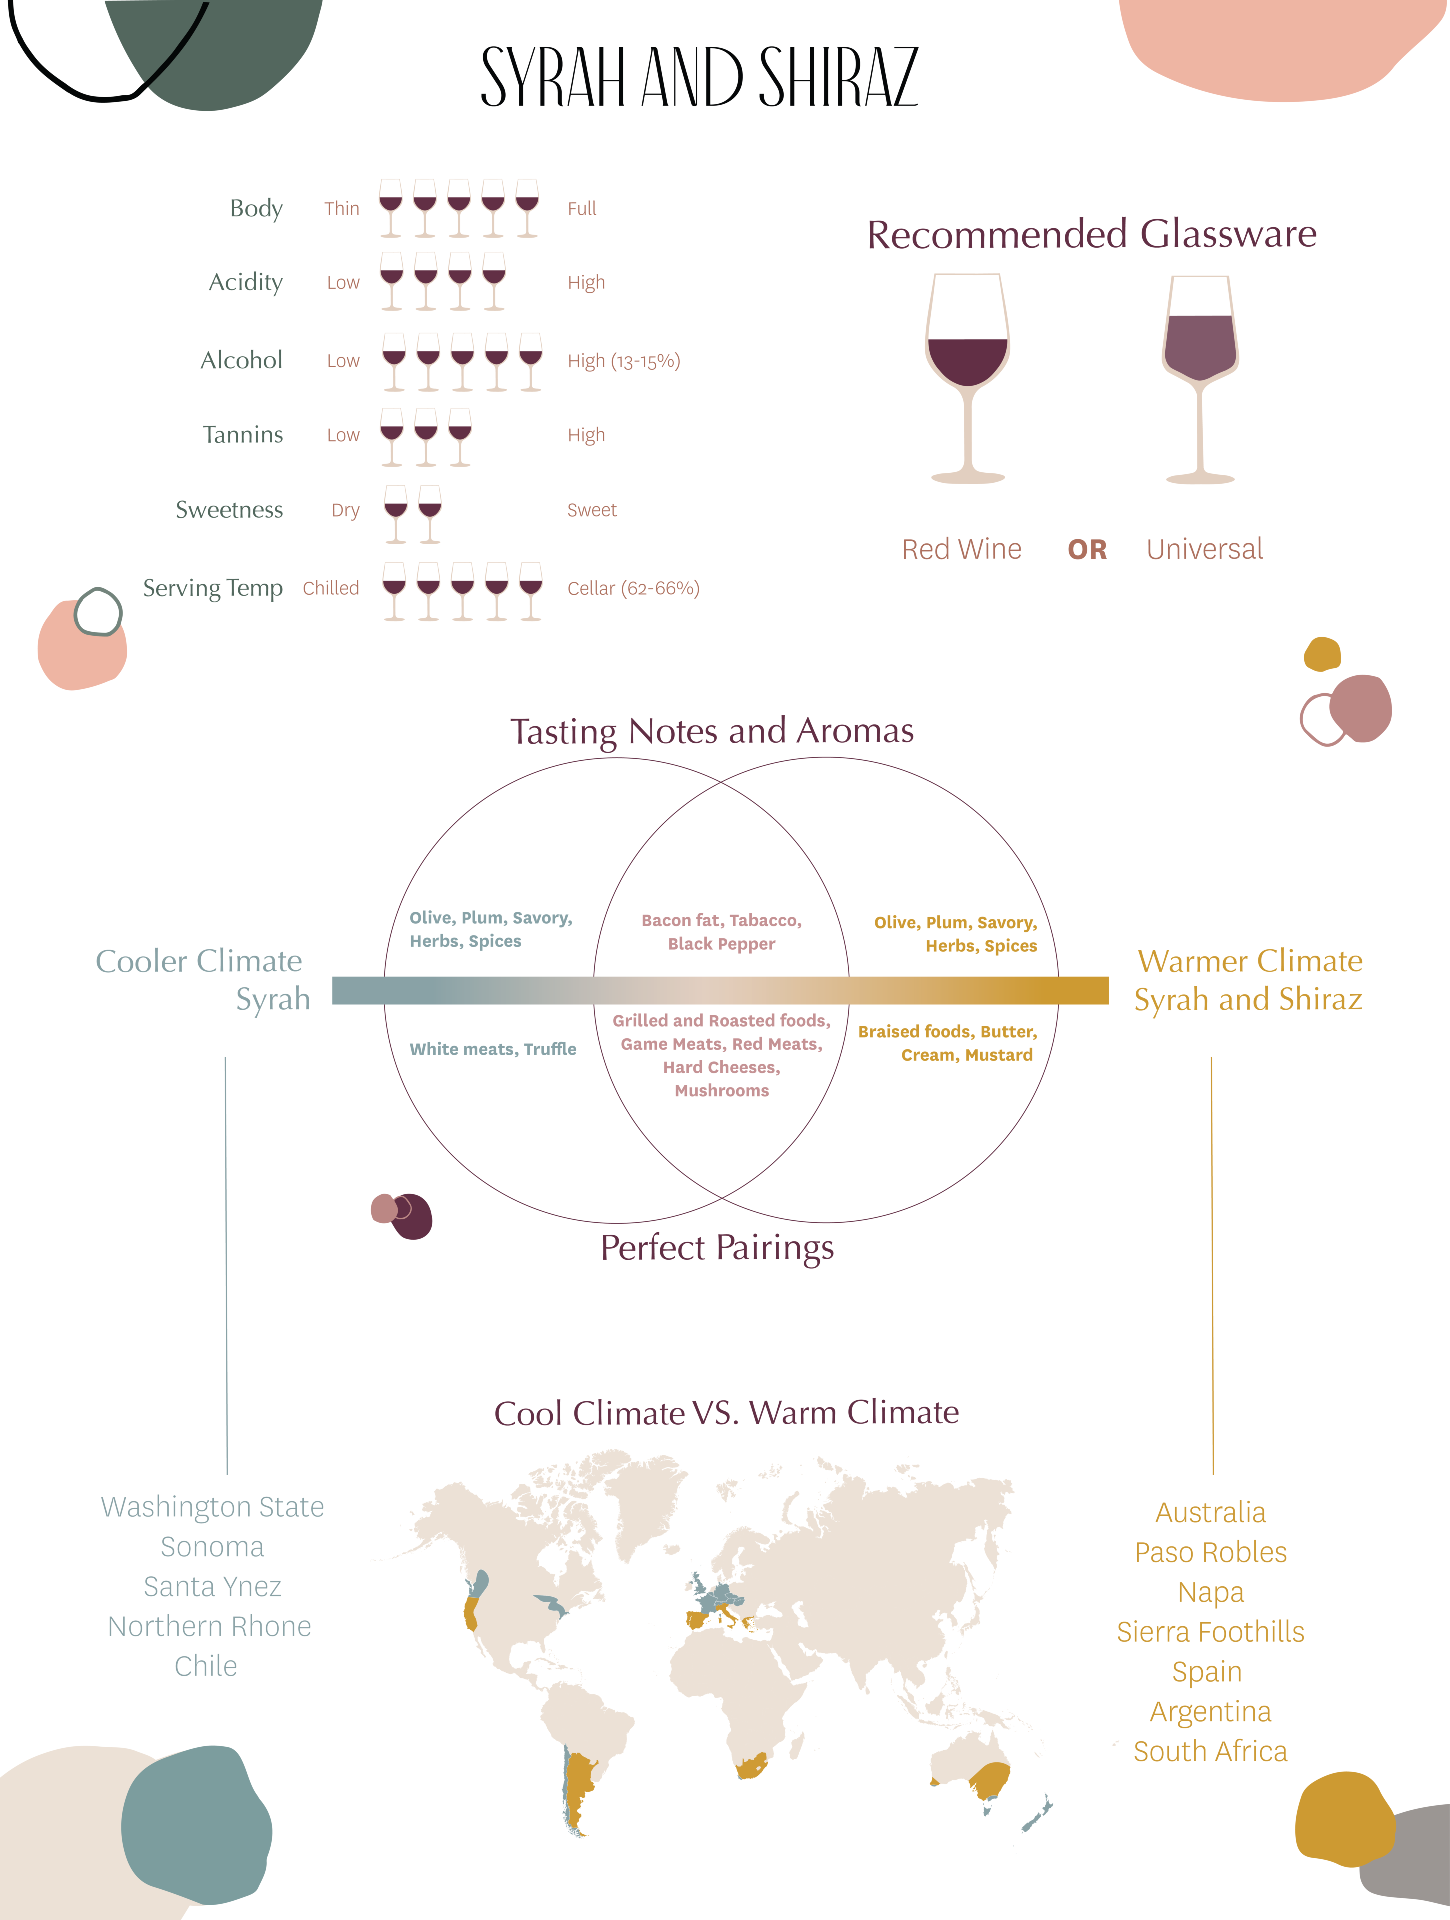 What's the Difference Between Syrah and Shiraz Wines - Infographic